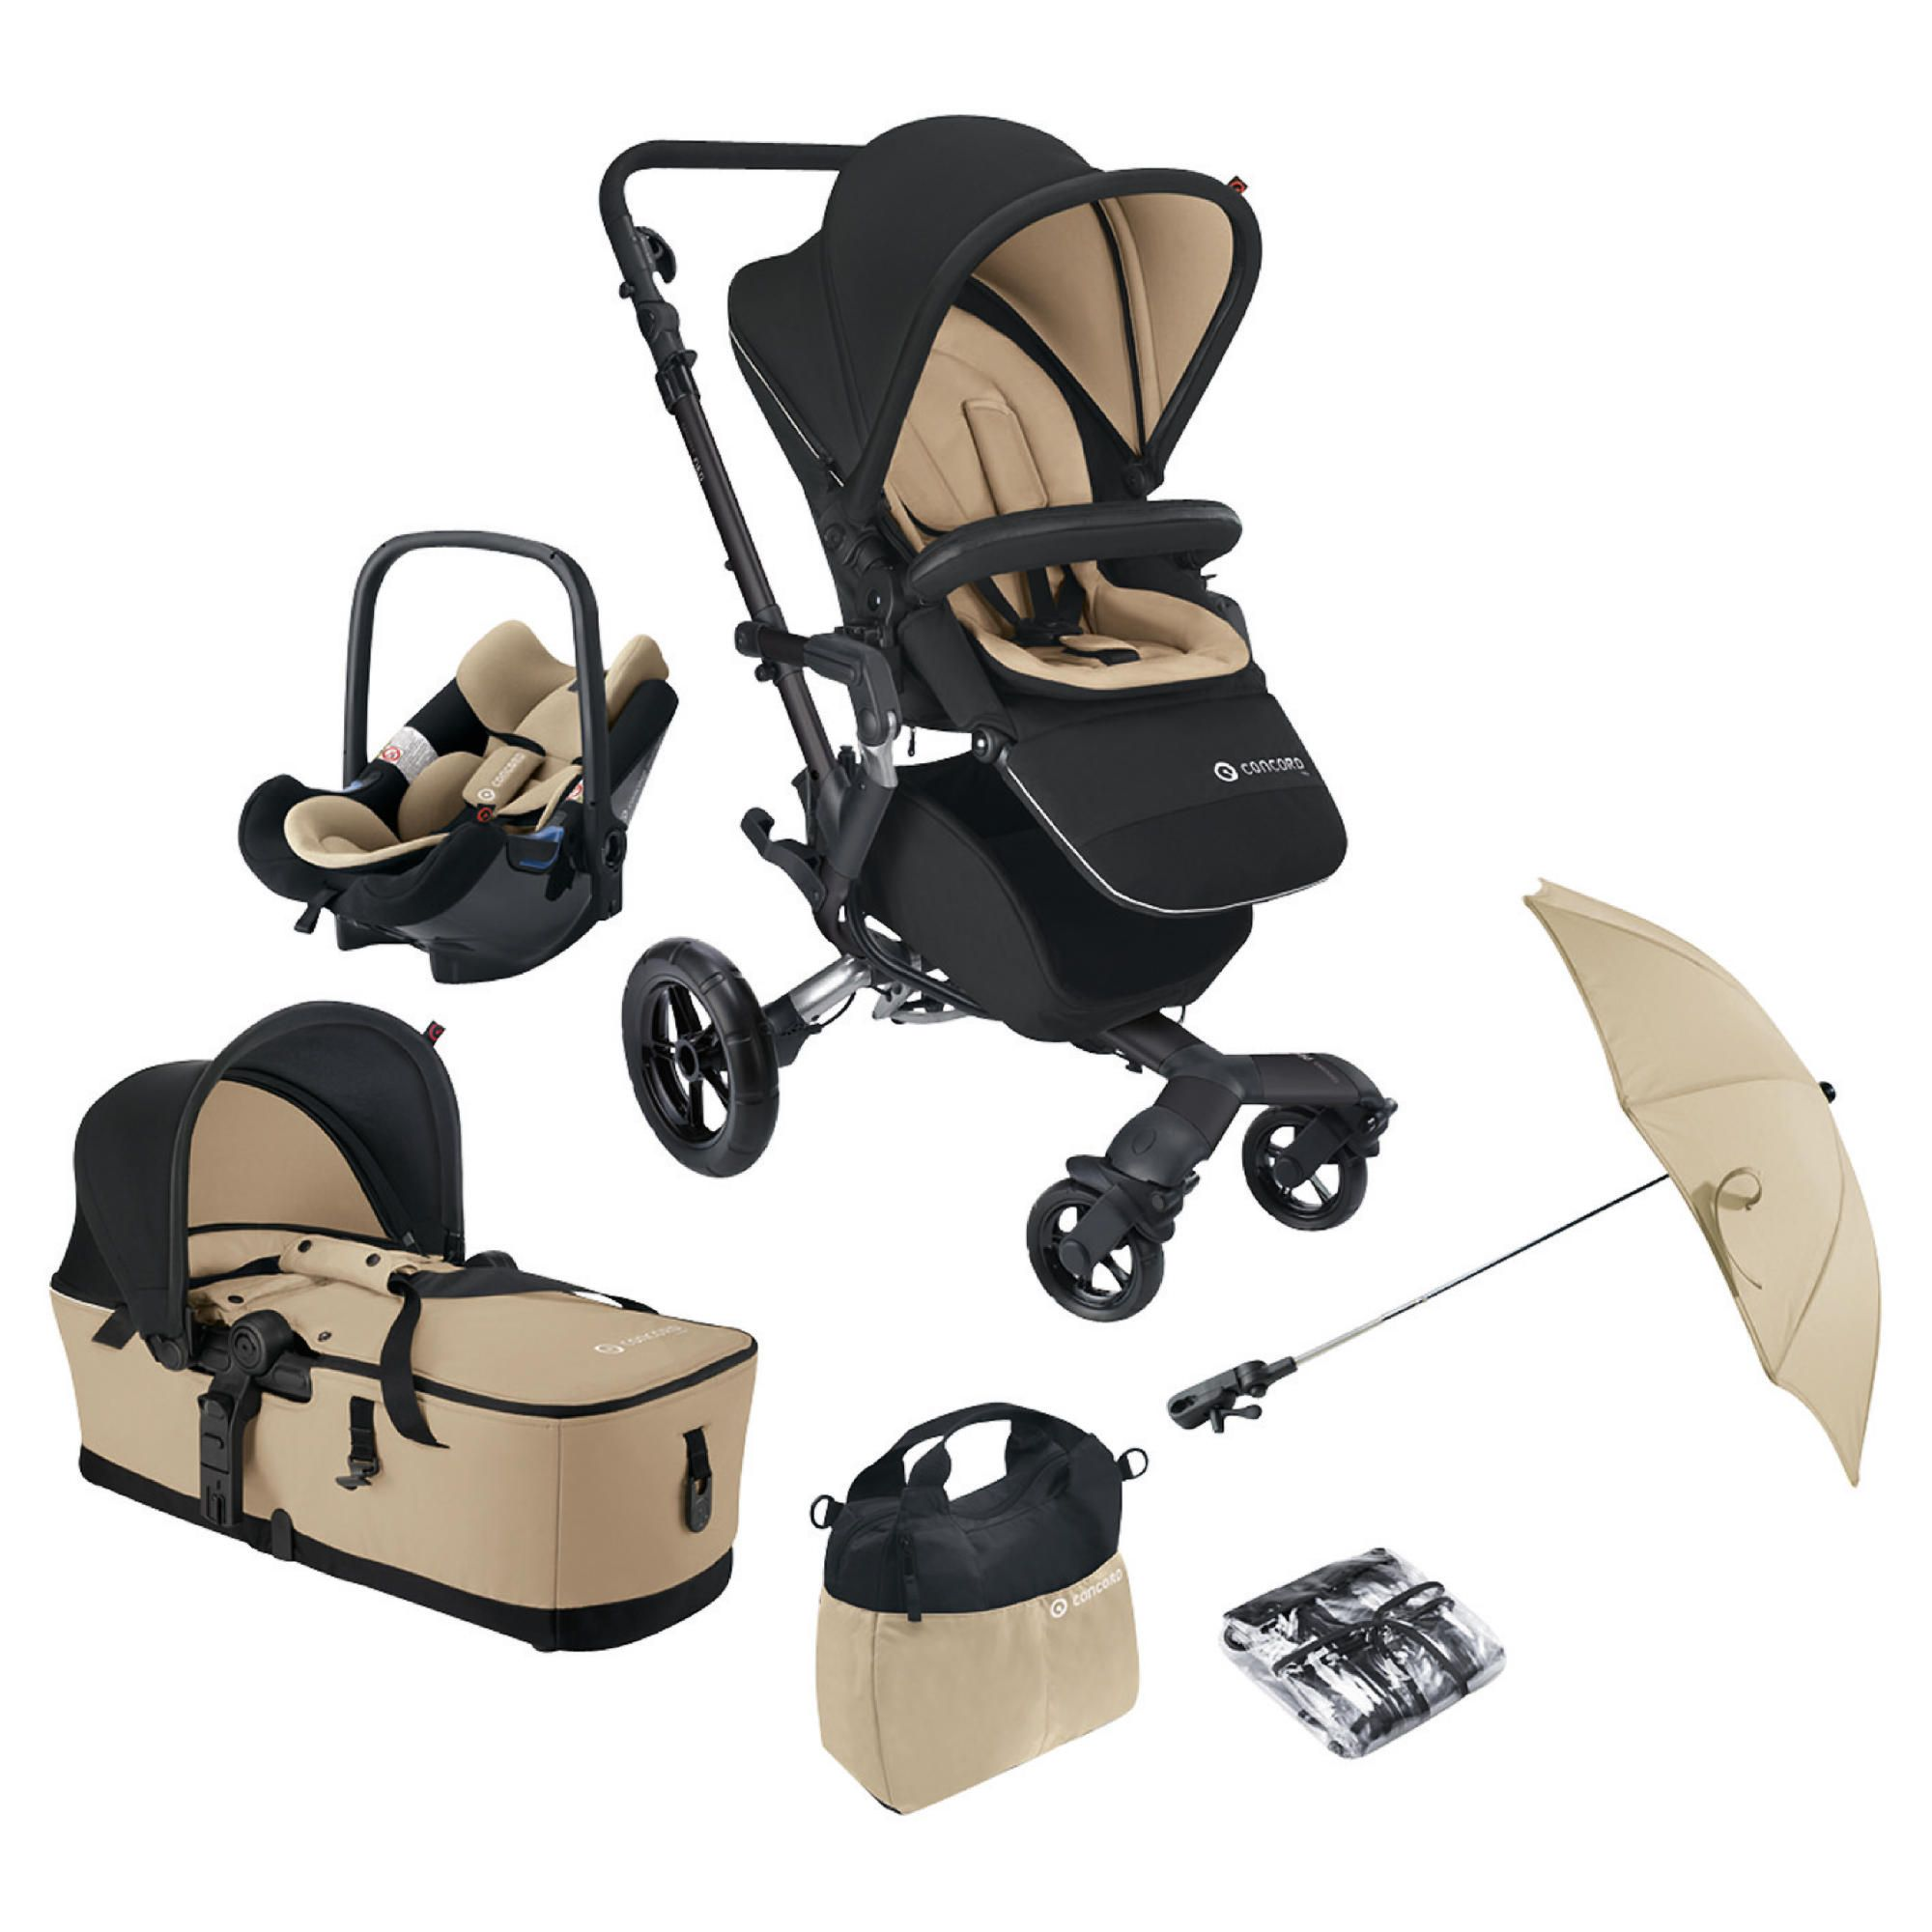 Concord Travel System Neo Mobility Set, Sahara at Tesco Direct